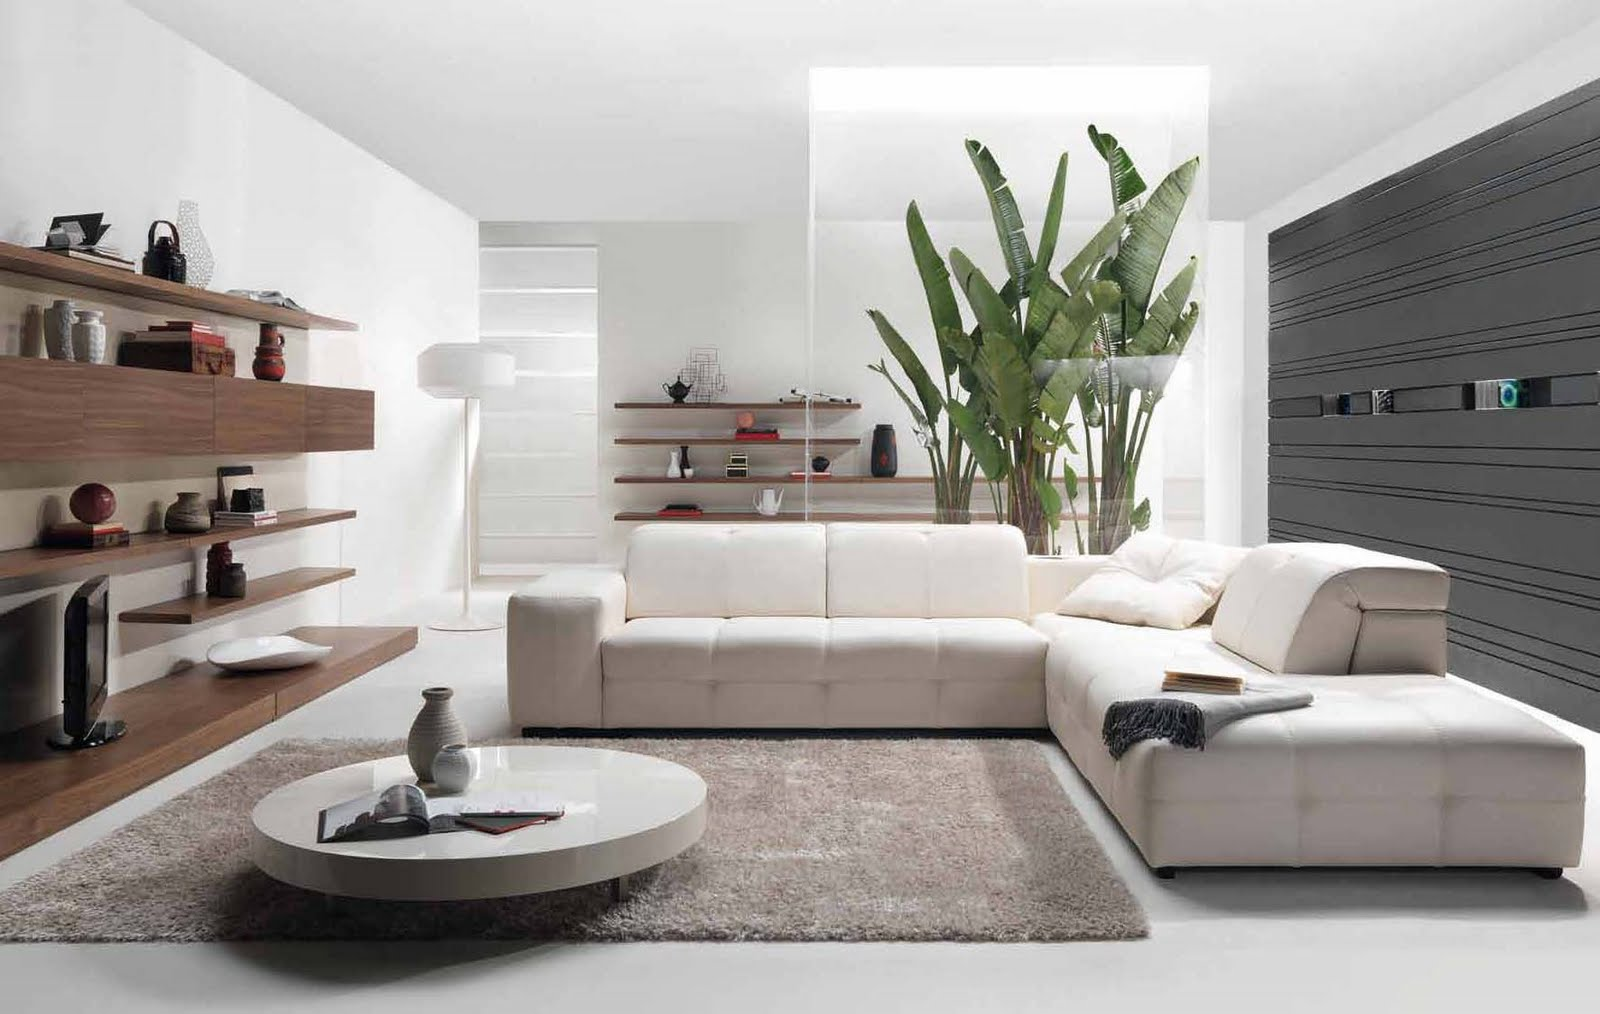 Fullsize Of Living Room Interior Designs Photos